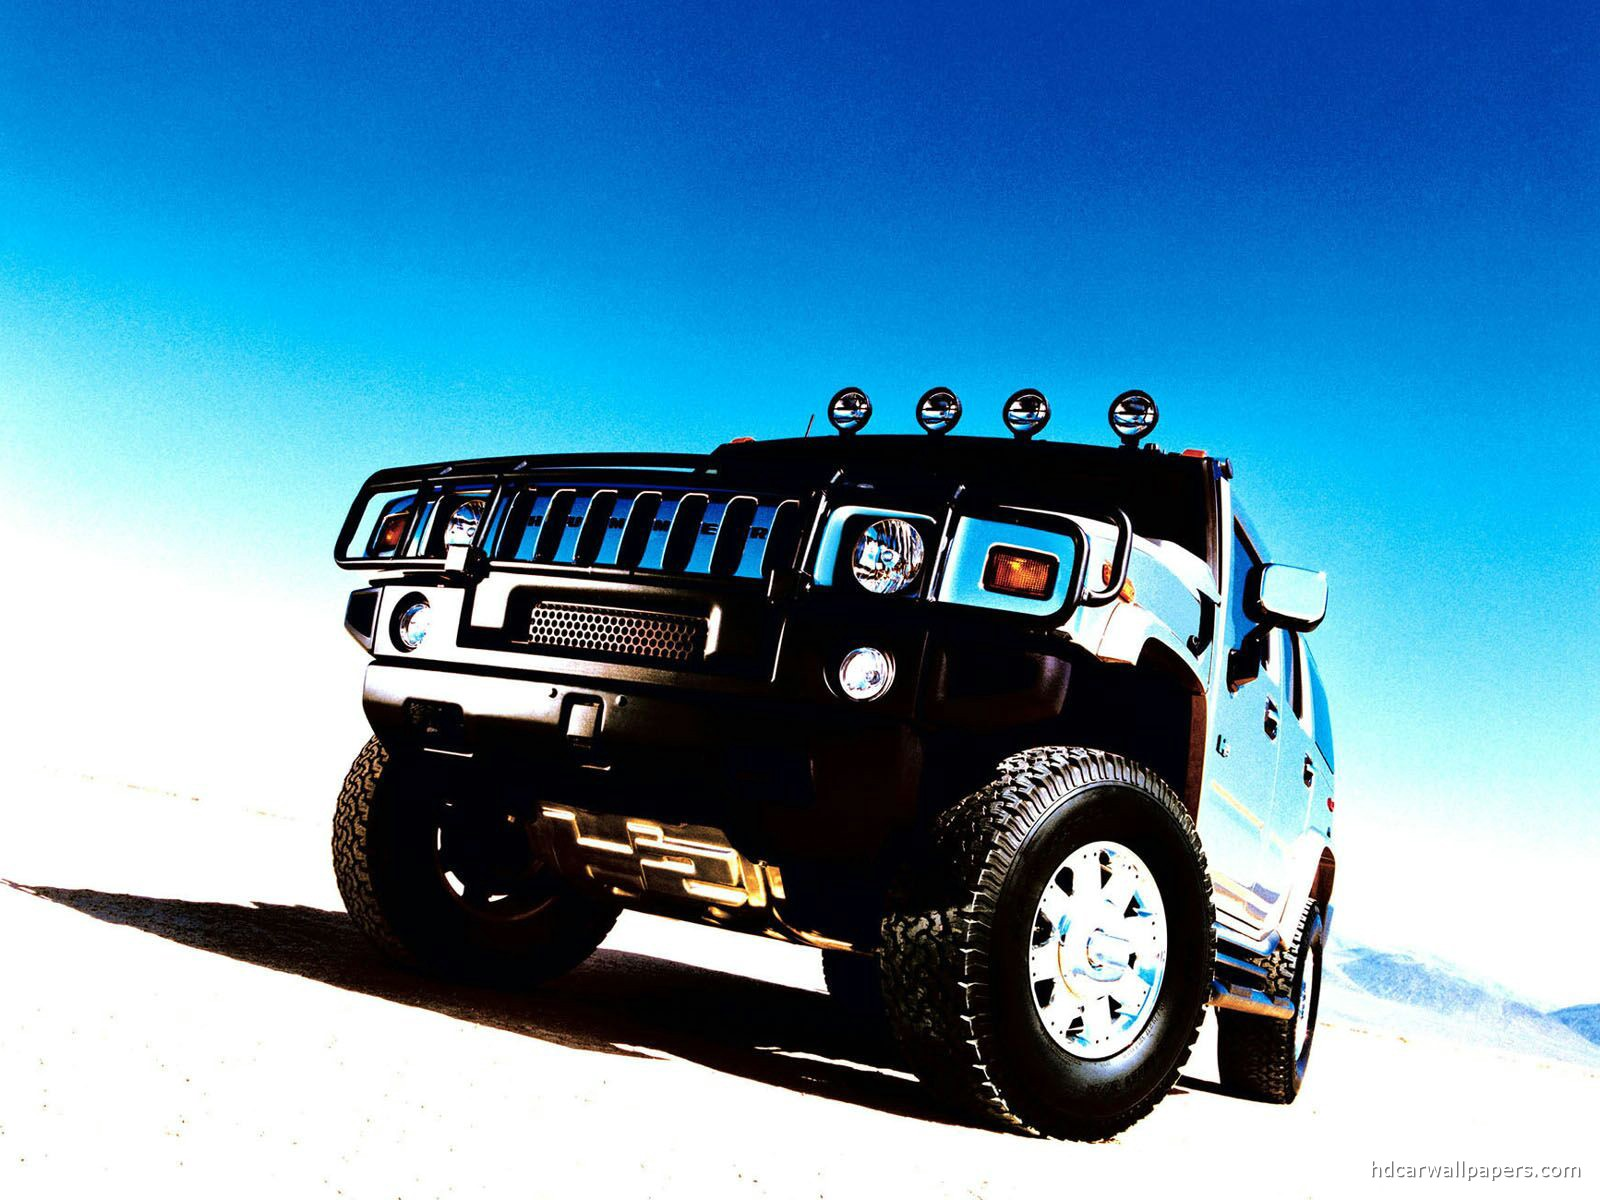 Hummer Wallpaper Free For PC